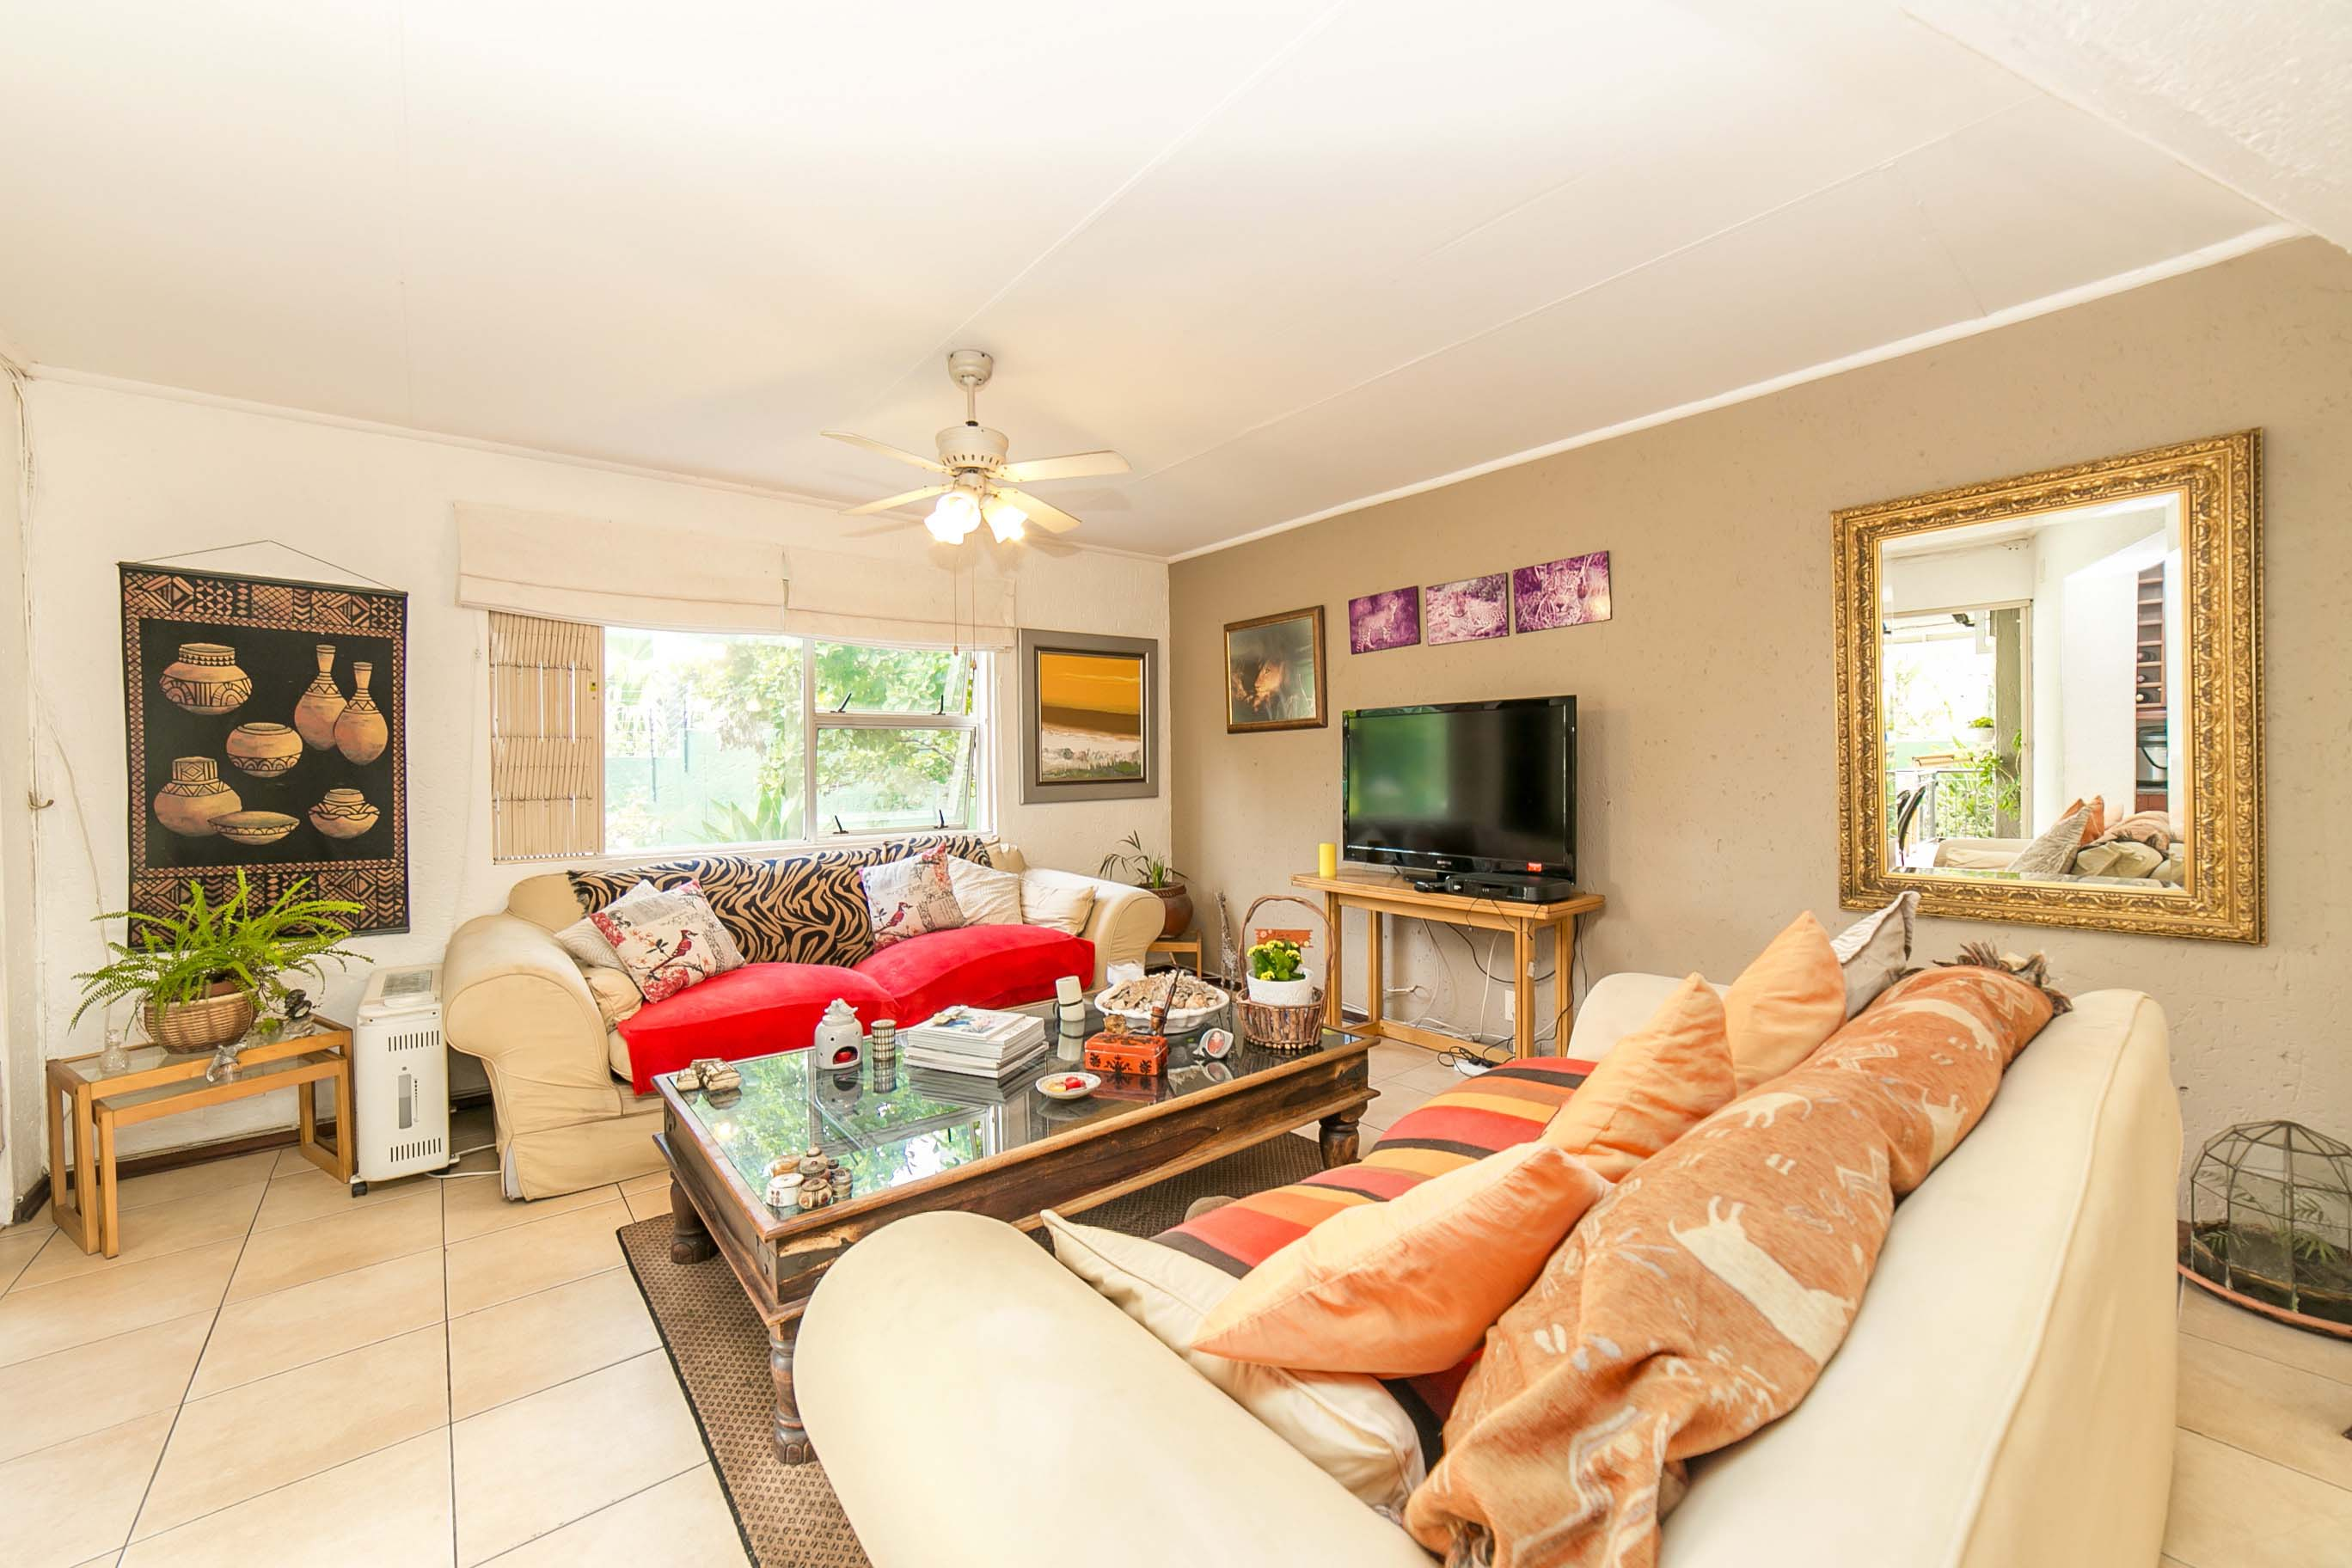 4 Bedroom House for sale in Lonehill ENT0082001 : photo#8